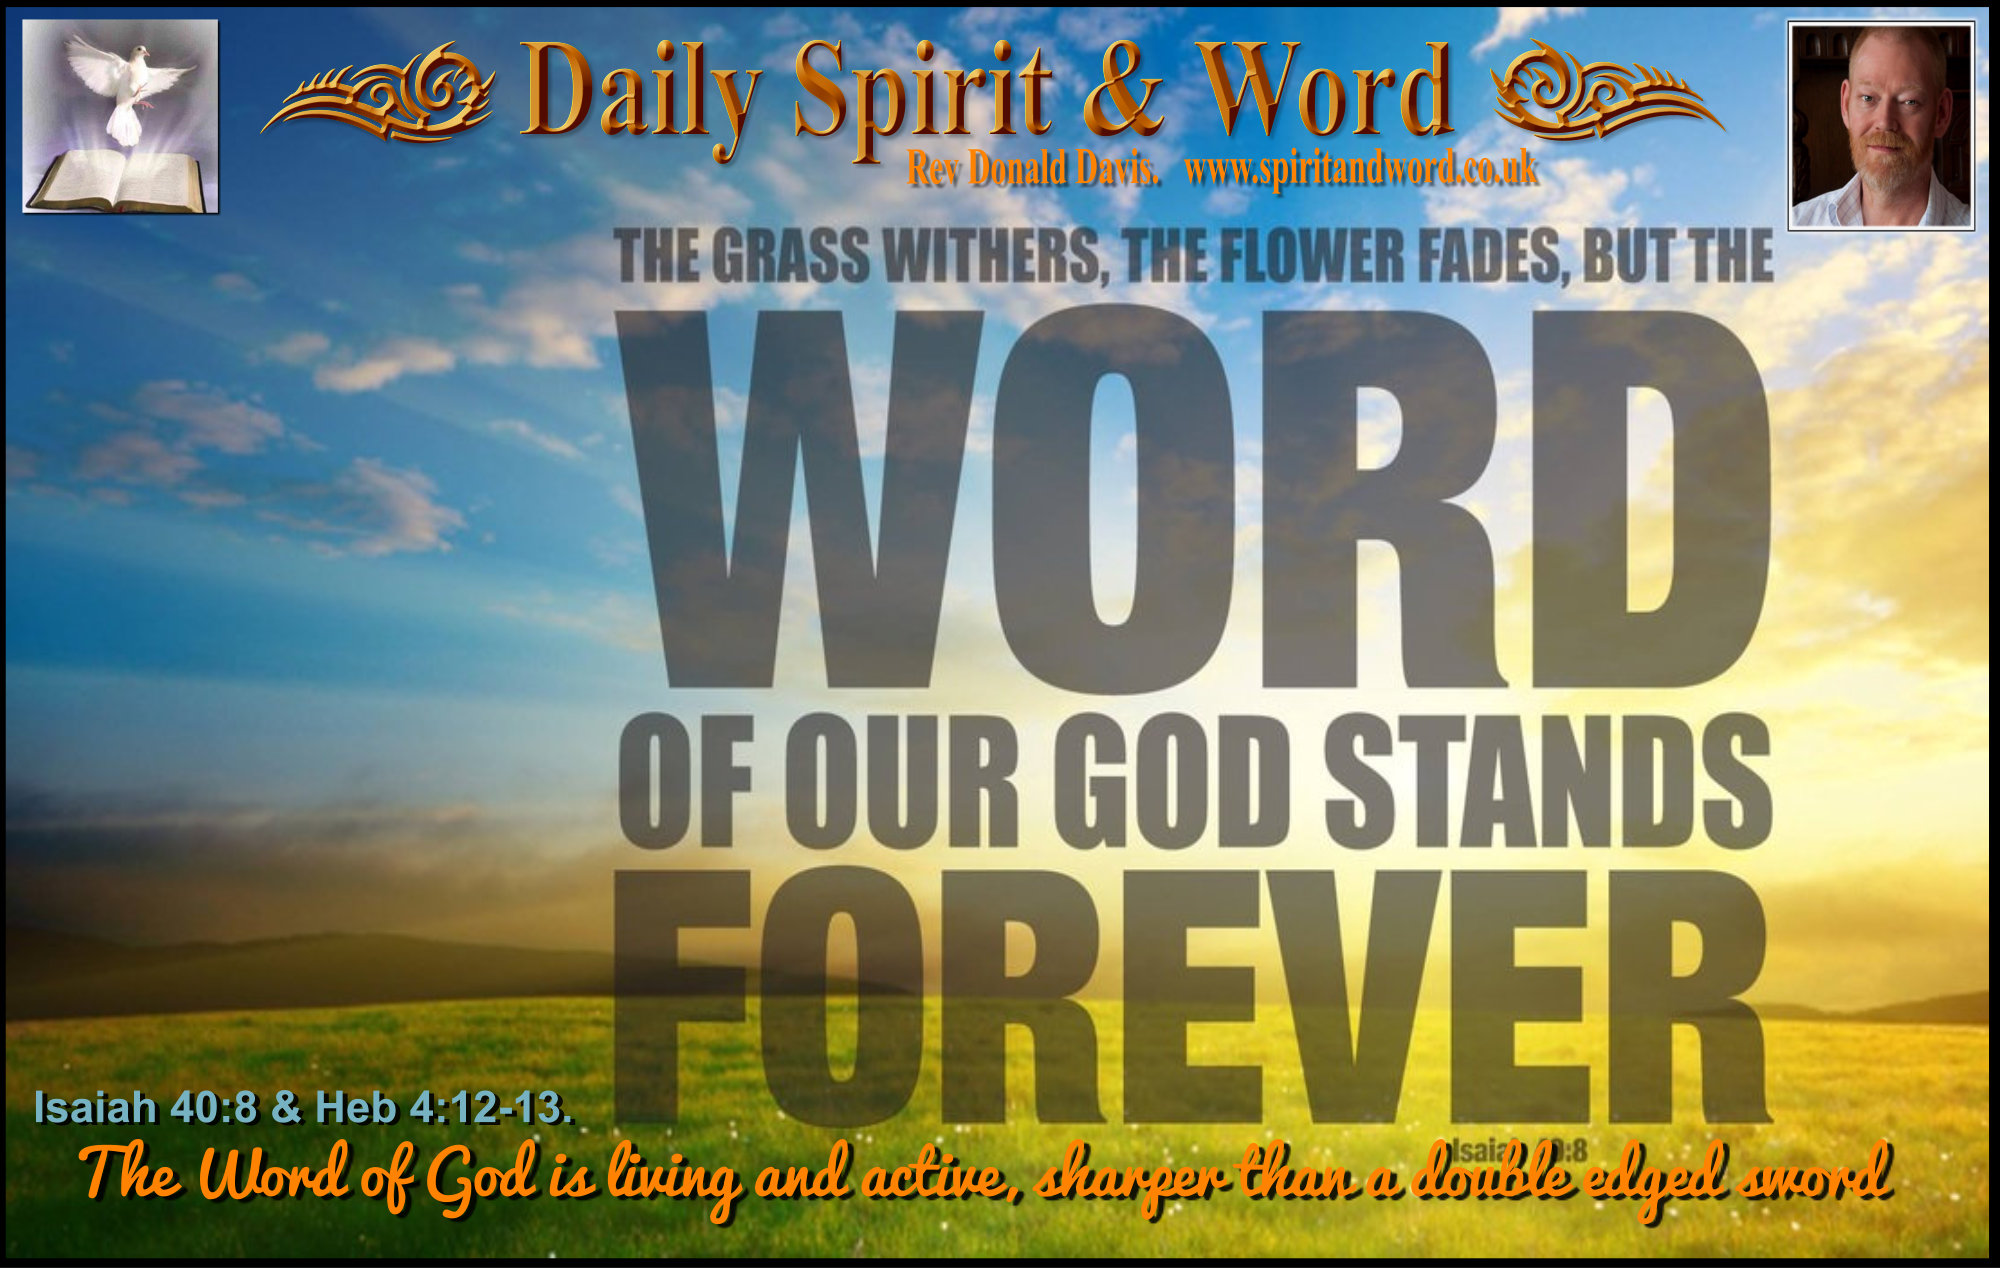 Spirit and Word: God's Word